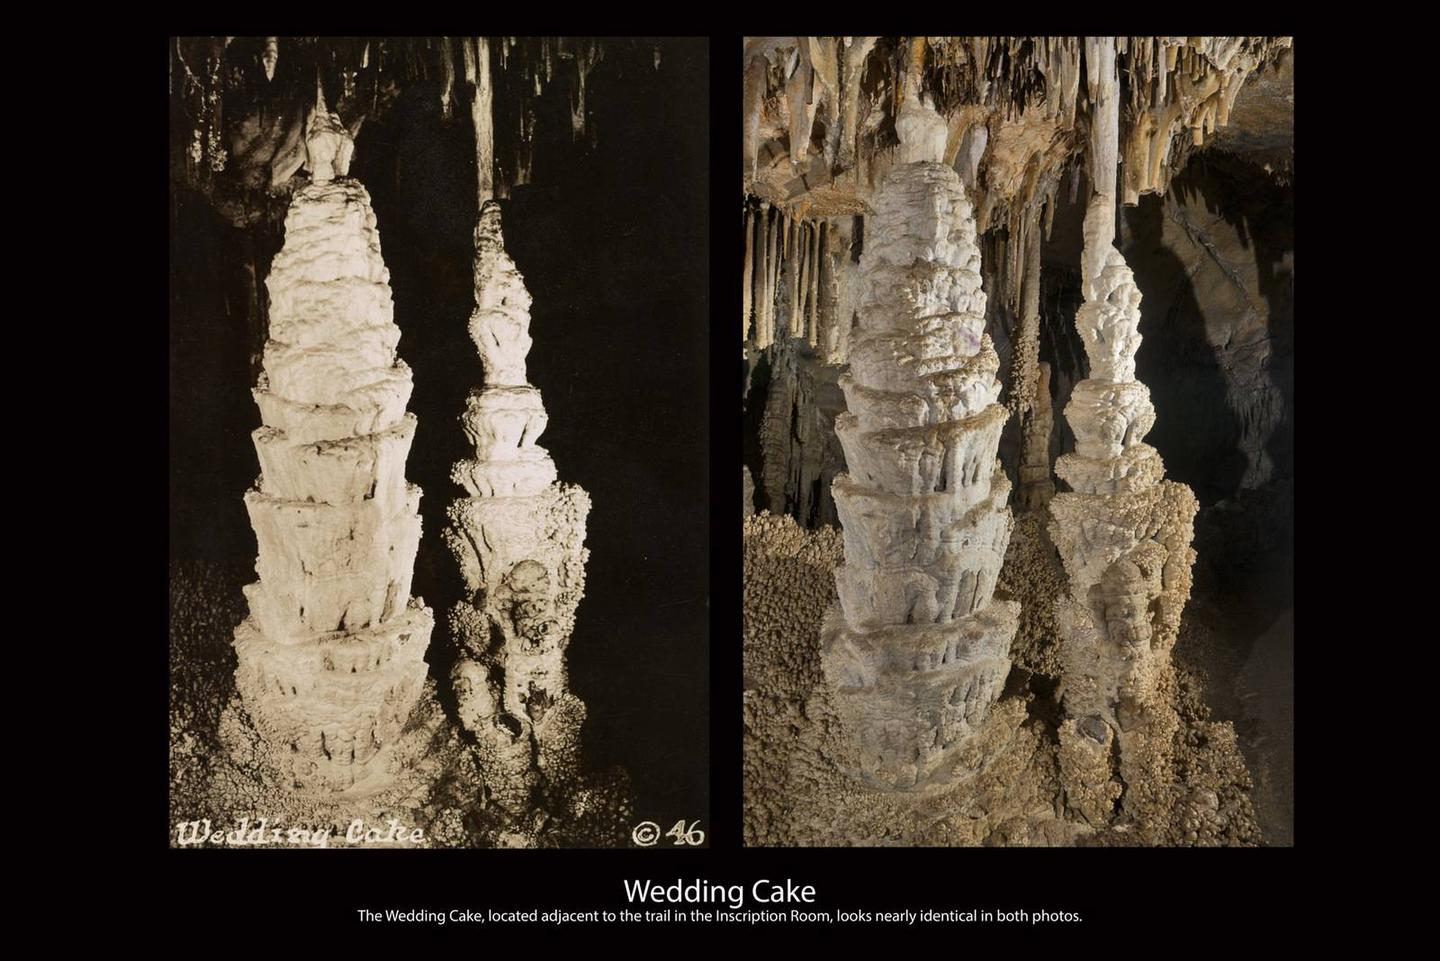 Two images of the same cave speleothems , one from 1928, the other from 2016. They look the same with stalagmites growing in what looks like layer like a weeding cake. A historic photo from 1928 next to an image taken in the same spot in the cave in 2016.